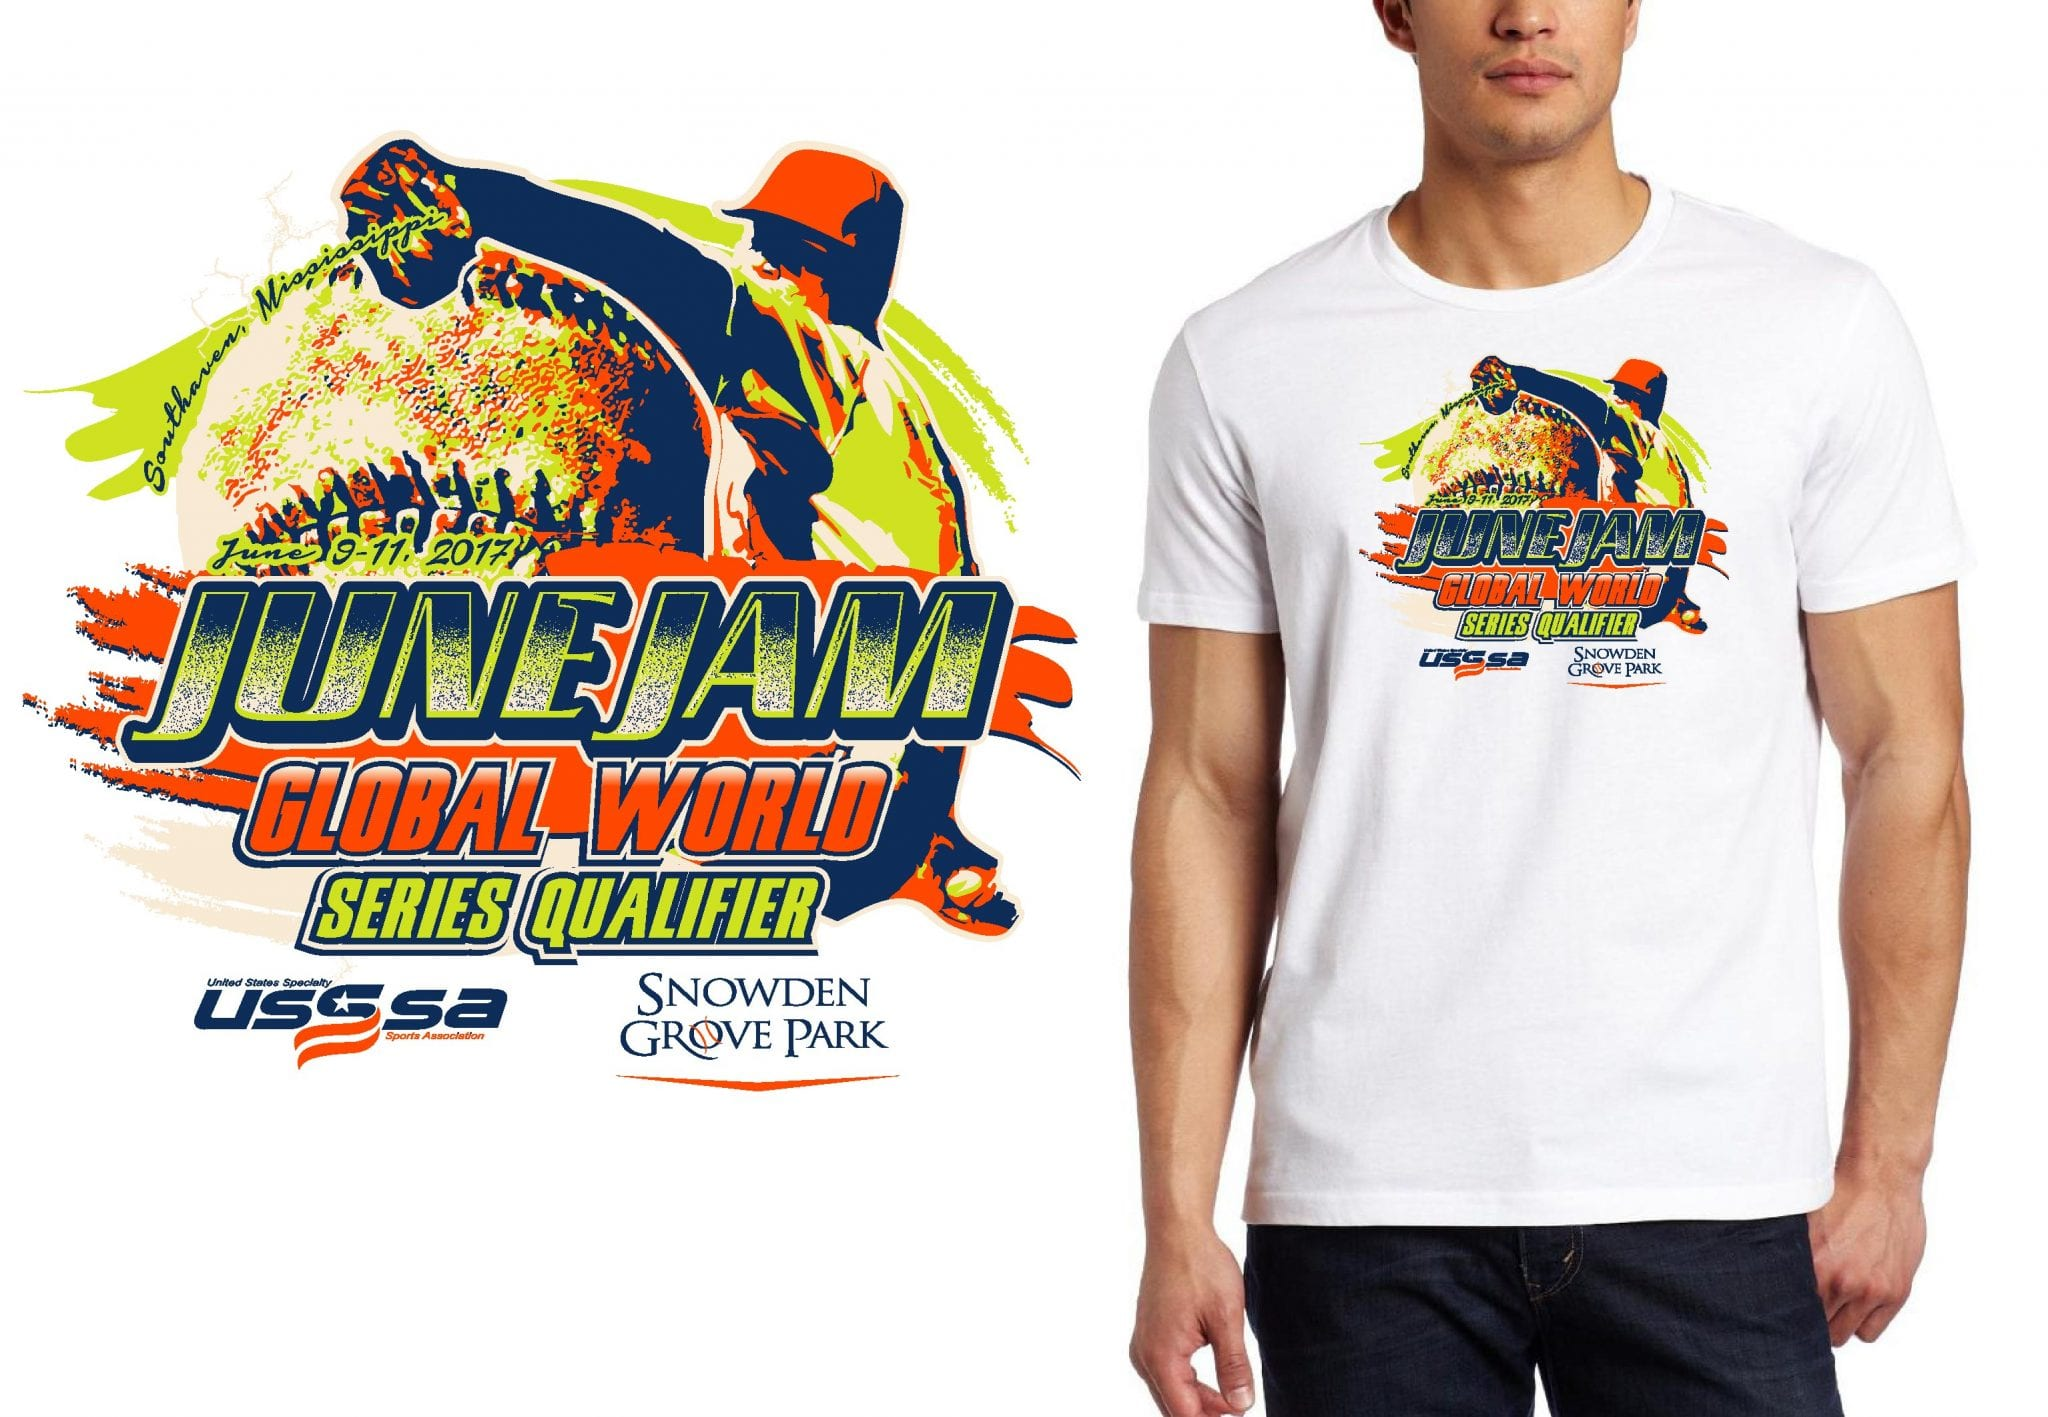 BASEBALL LOGO for Global-World-Series-Qualifier T-SHIRT UrArtStudio